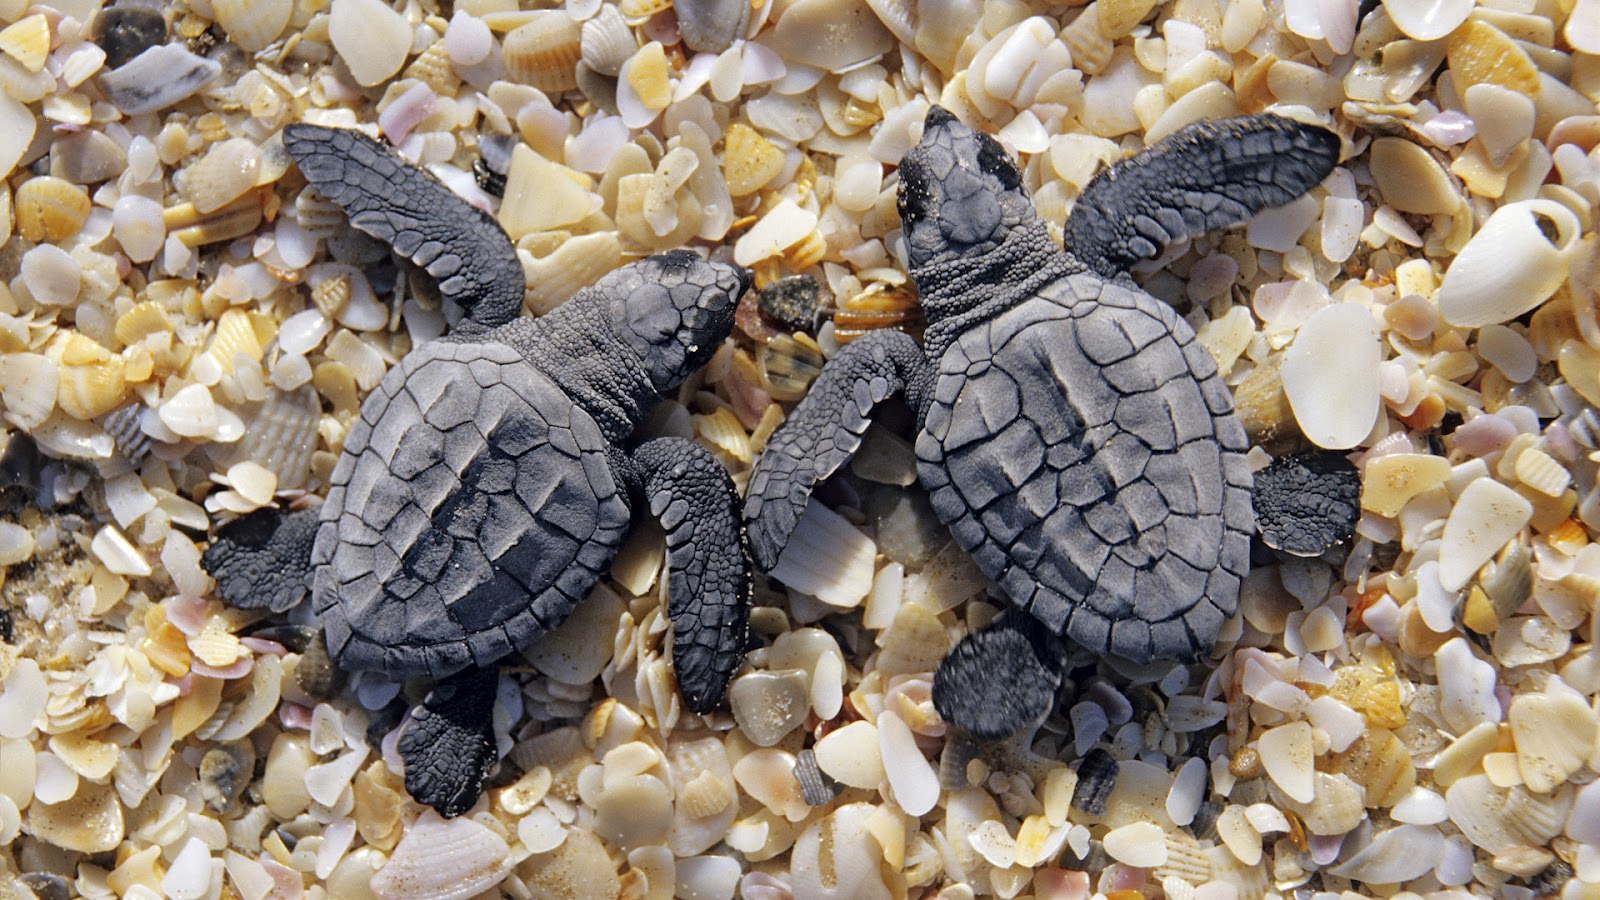 http://3.bp.blogspot.com/-beGr23QygNM/UCJ-A8P5pdI/AAAAAAAAAJw/2axhewUVuoc/s1600/hd-turtles-backgrounds-two-little-young-black-turtles-on-the-beach-hd-turtles-backgrounds.jpg